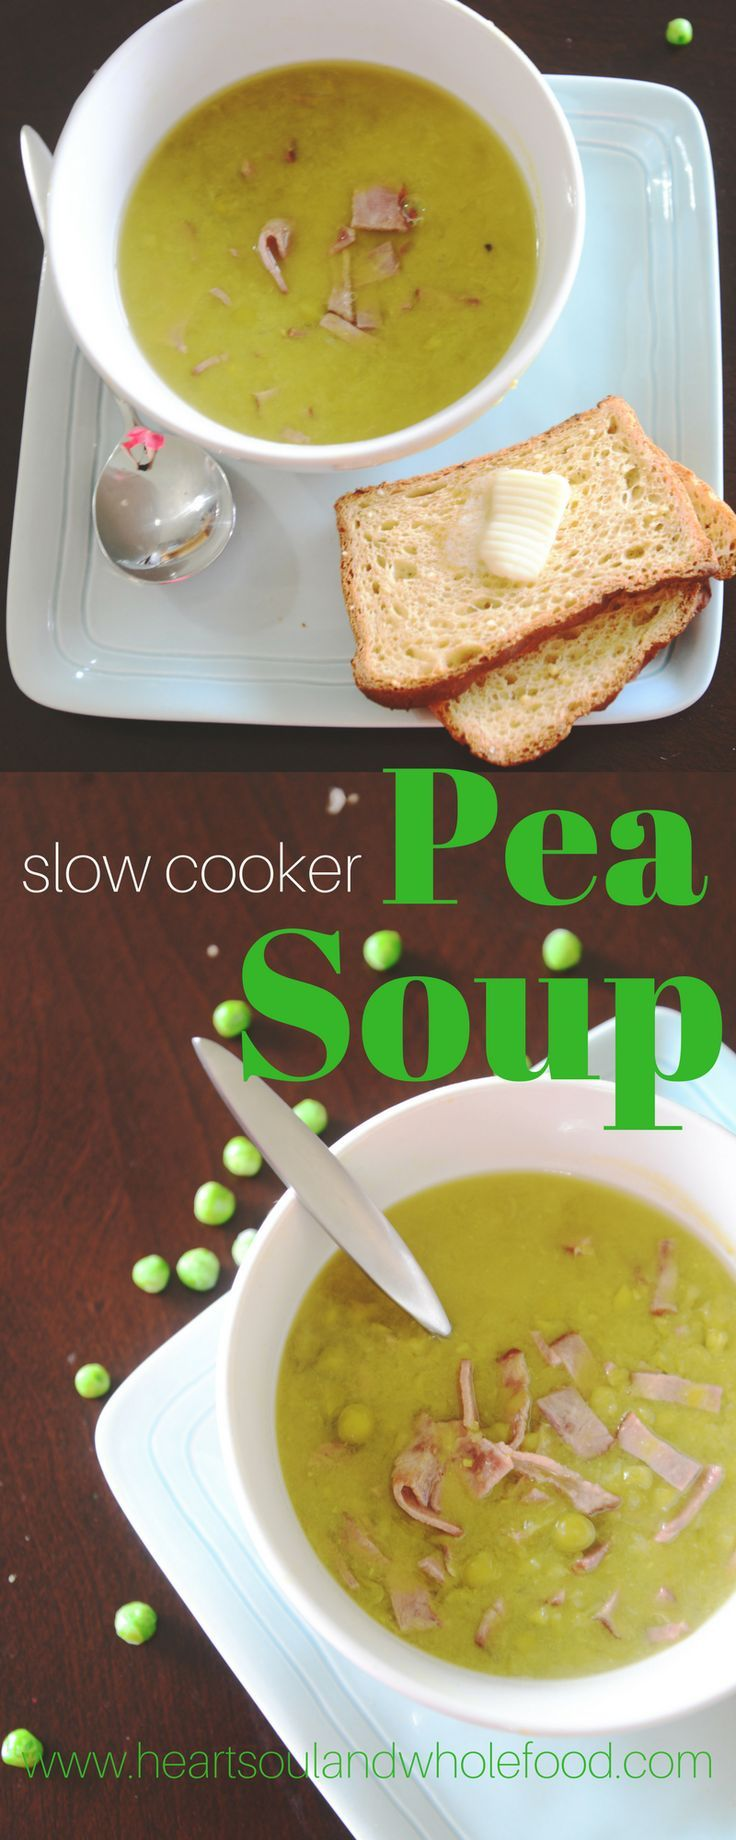 This pea soup recipe is made in the slow cooker with turkey bacon and bone broth. This hearty pea soup recipe requires little time and few ingredients.